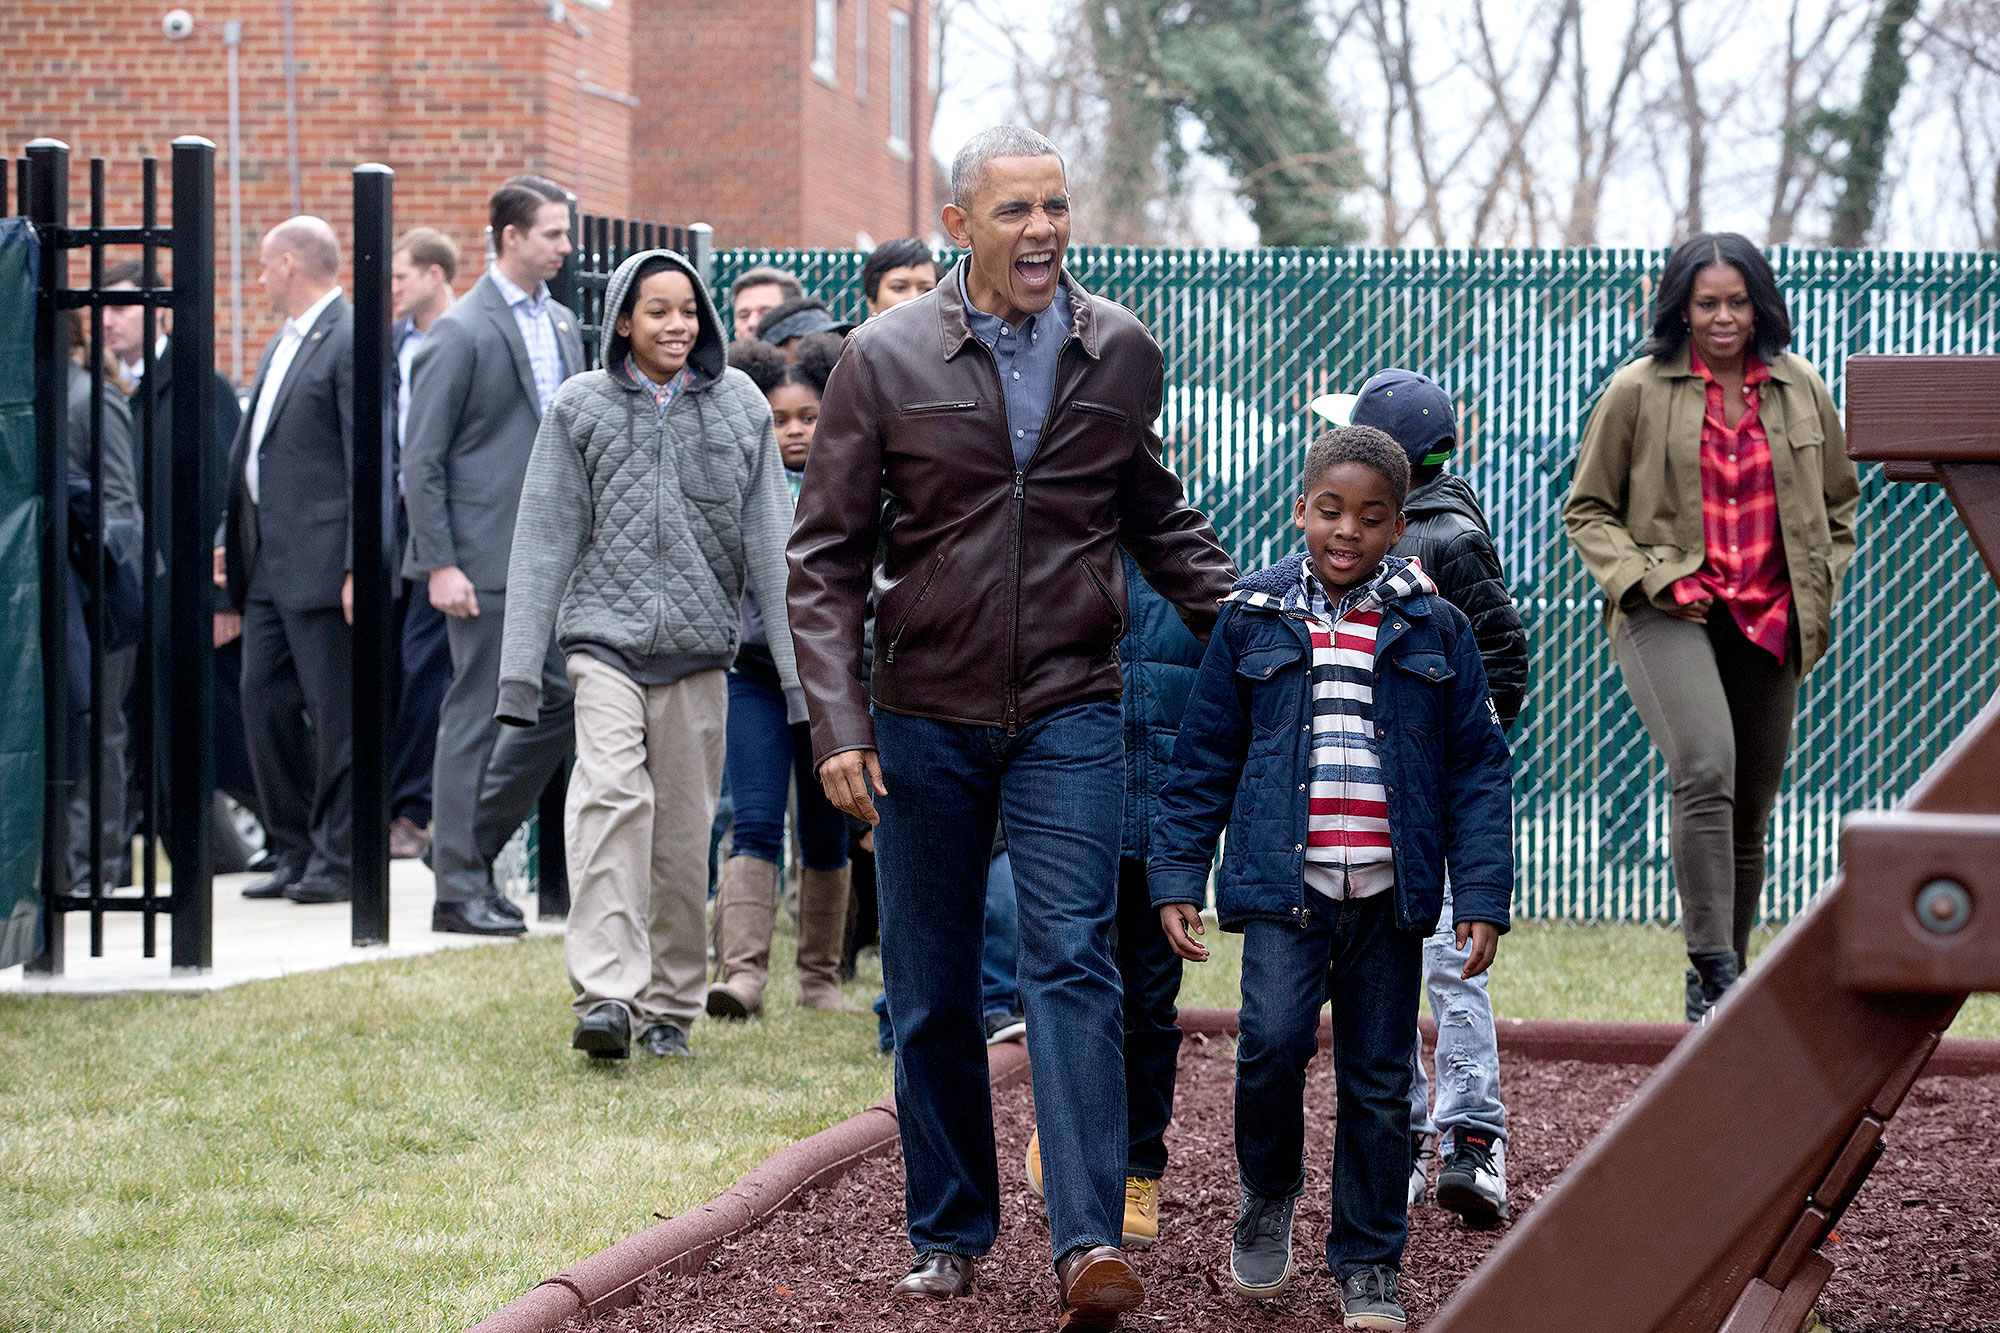 U.S. President Barack Obama and first lady Michelle Obama arrive with children to play on a playset dubbed Malia and Sasha's Castle, formerly used by the Obama children at the White House and donated by the Obama family, during a service marking Martin Luther King Jr. Day at the Jobs Have Priority Naylor Road Family Shelter January 16, 2017 in Washington, DC.